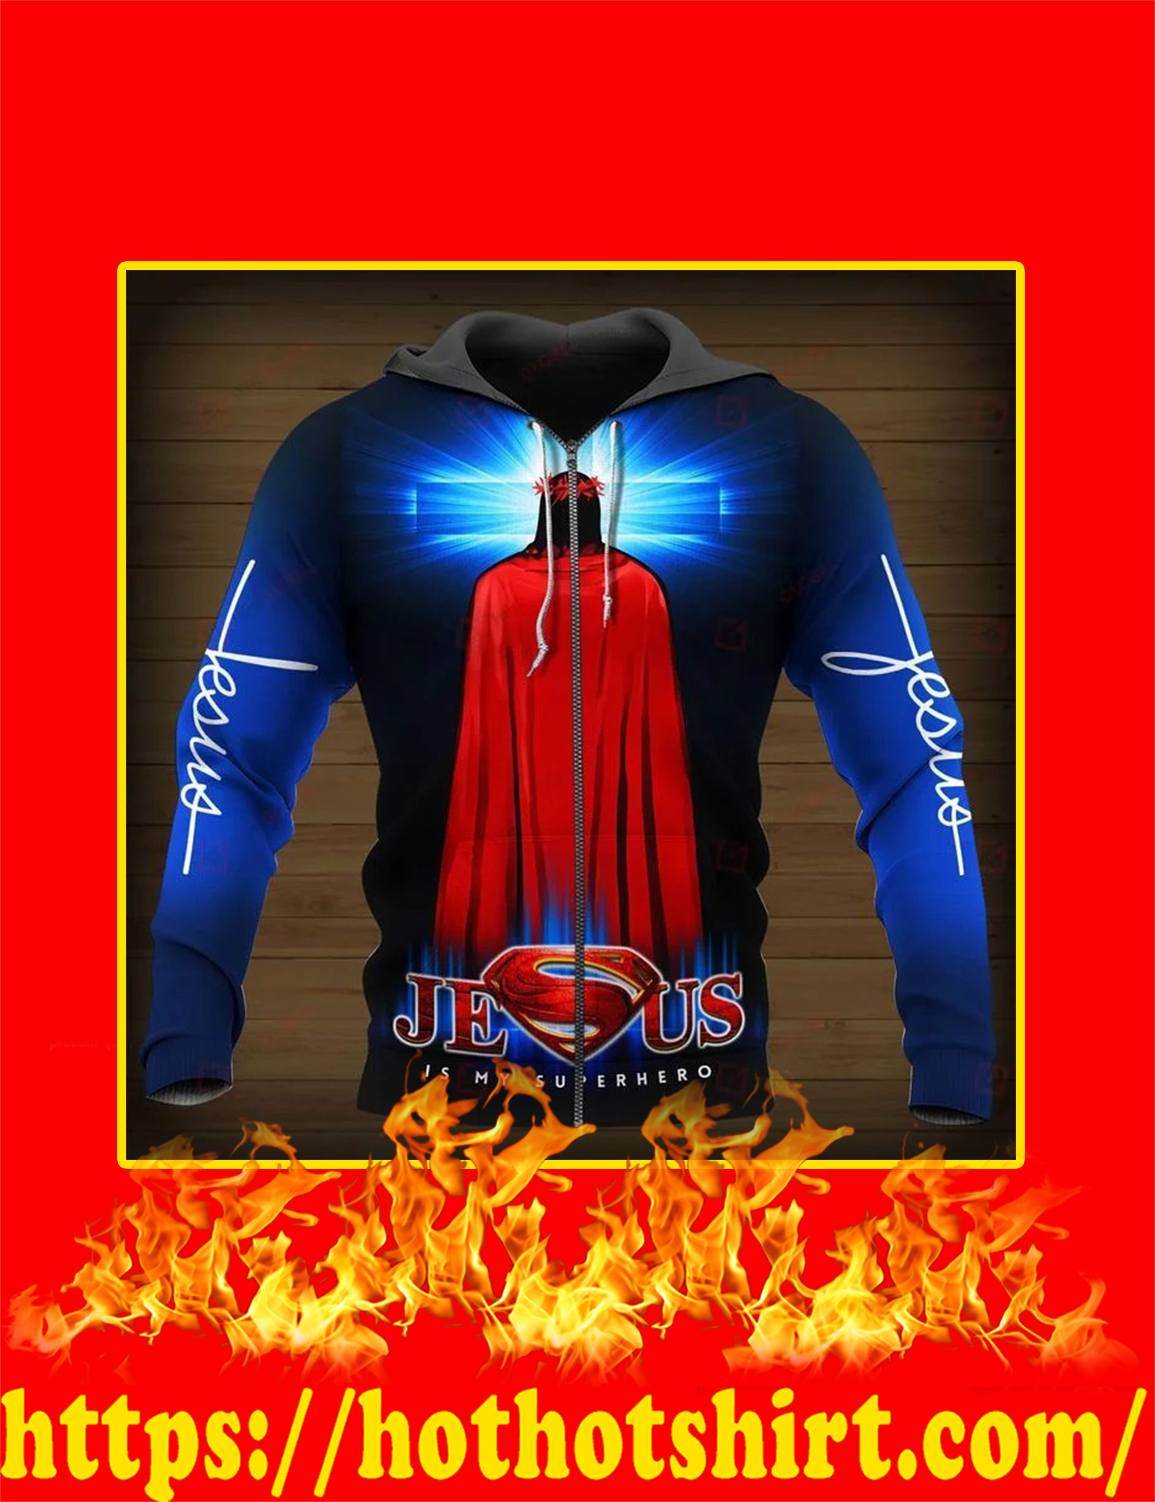 Jesus Is My Superhero 3d zip hoodie